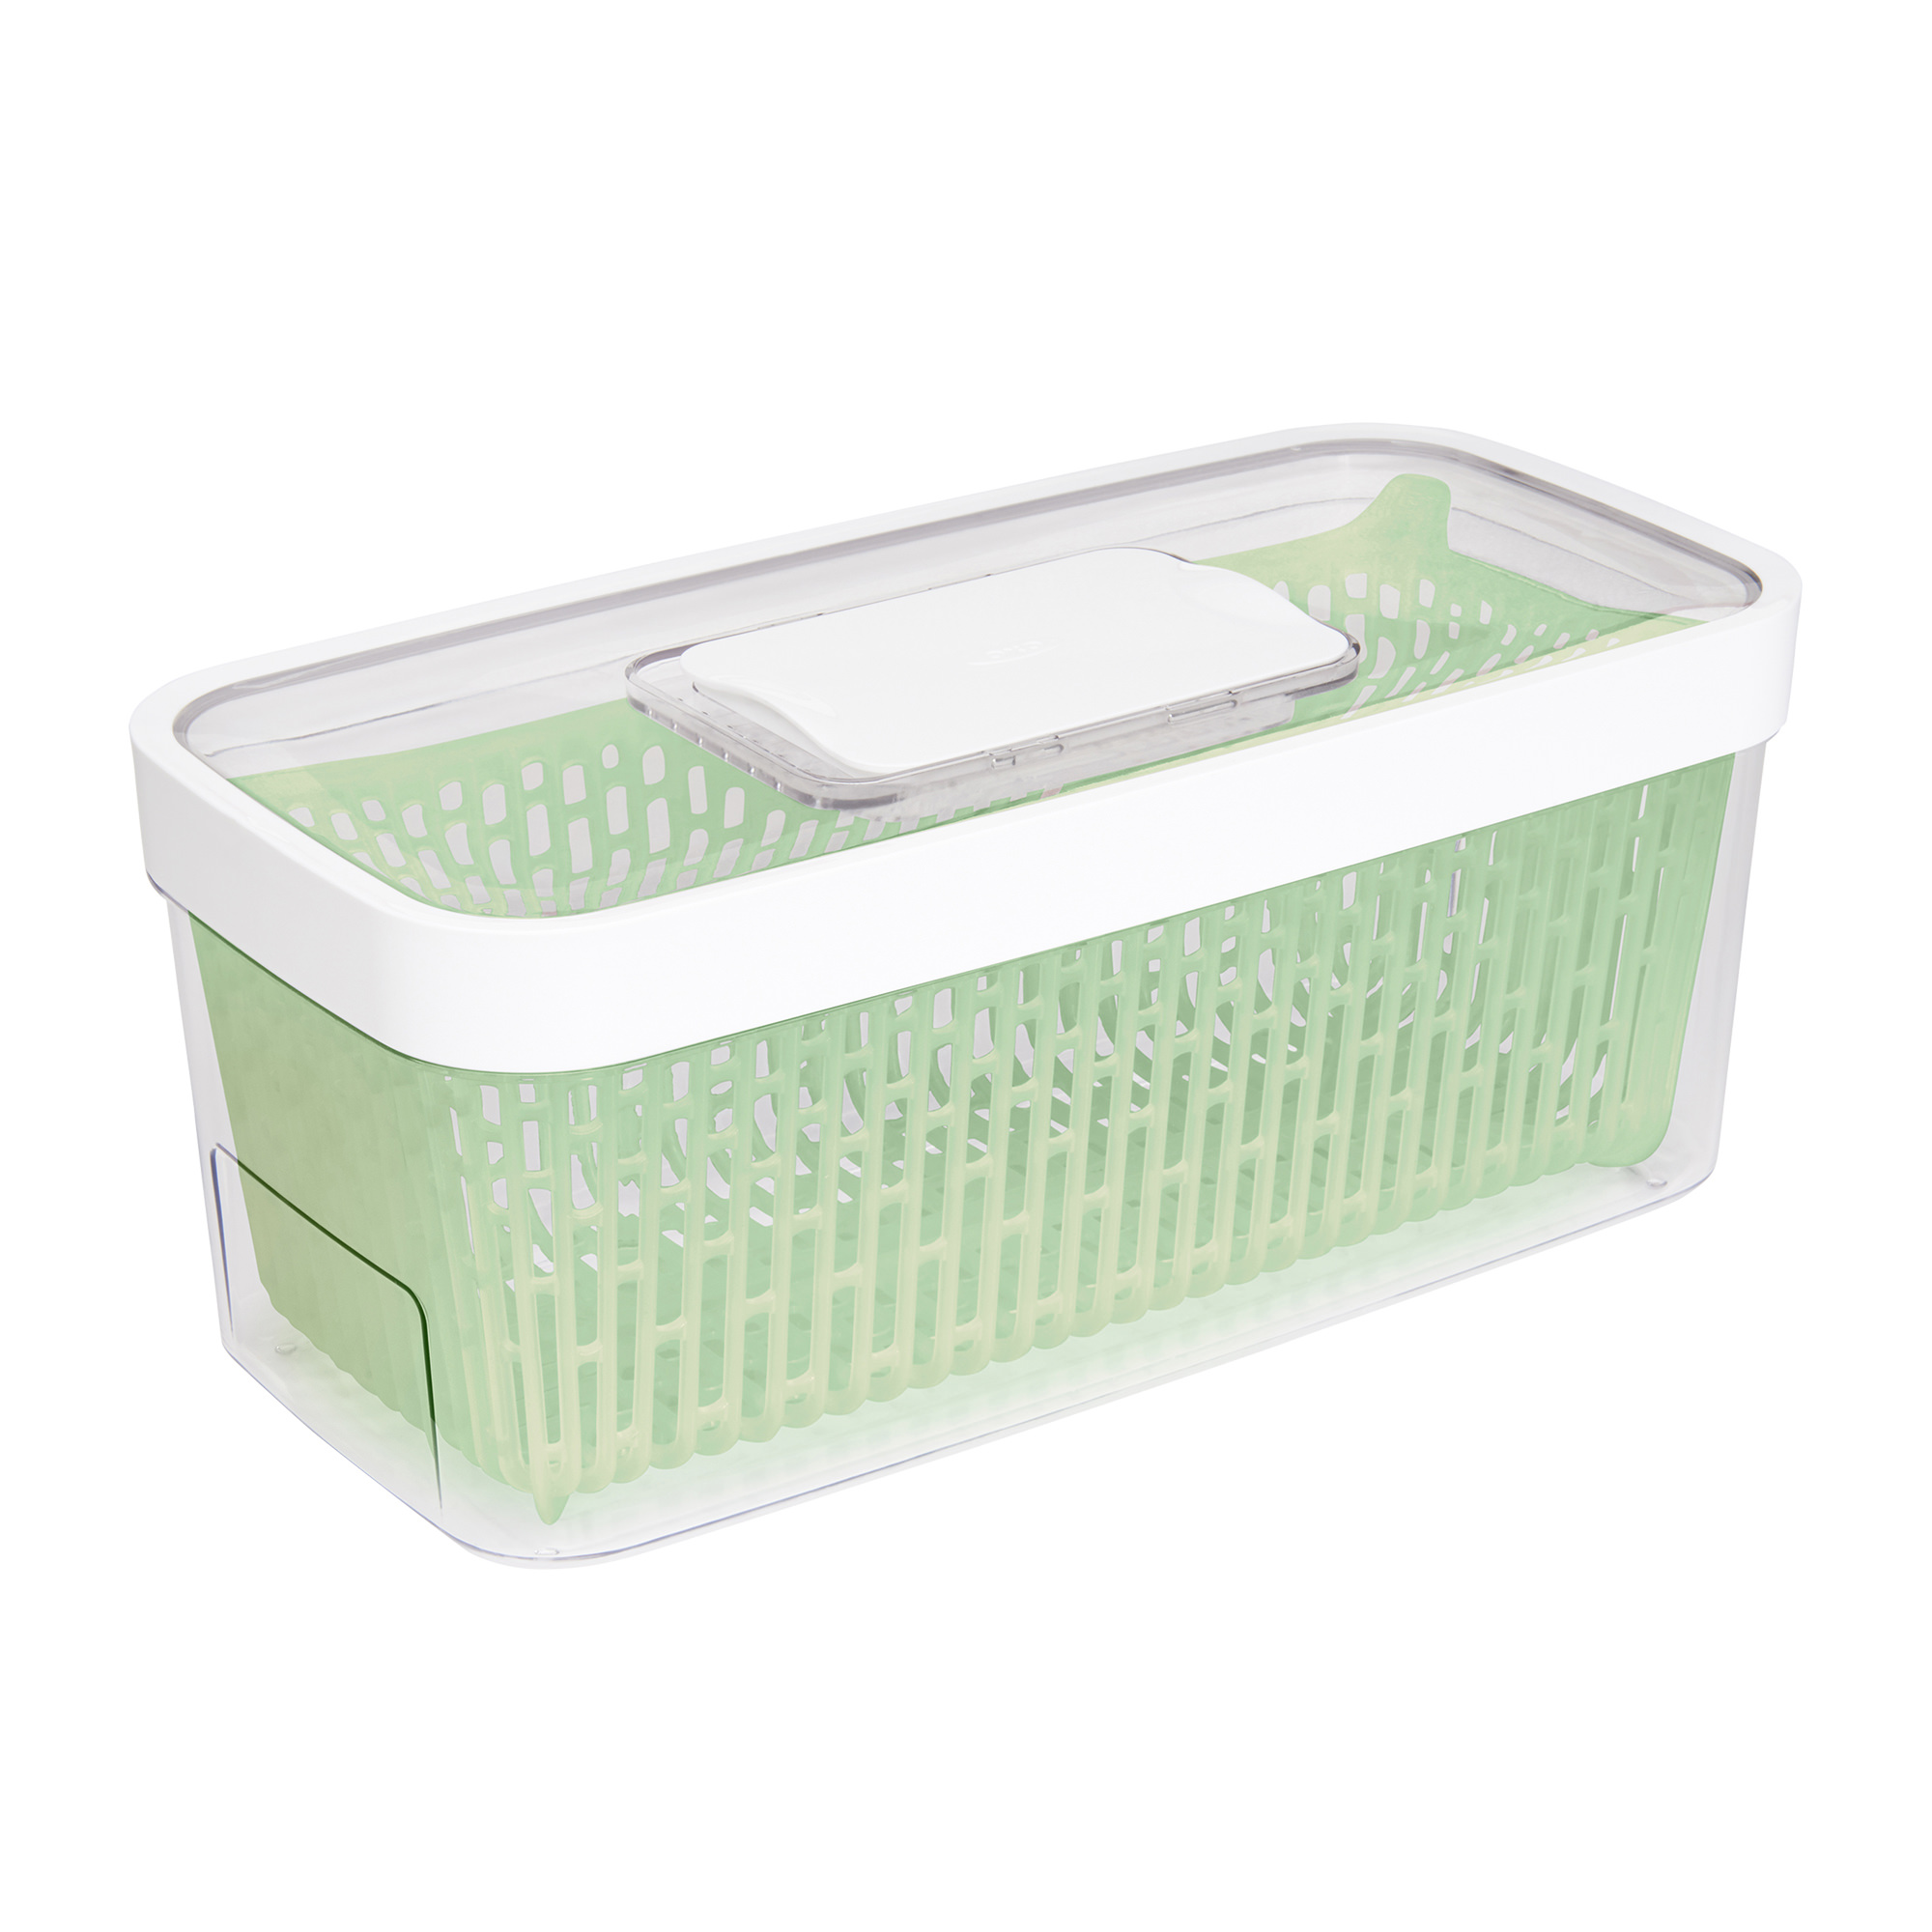 Oxo Good Grips GreenSaver Produce Keeper 4.7L